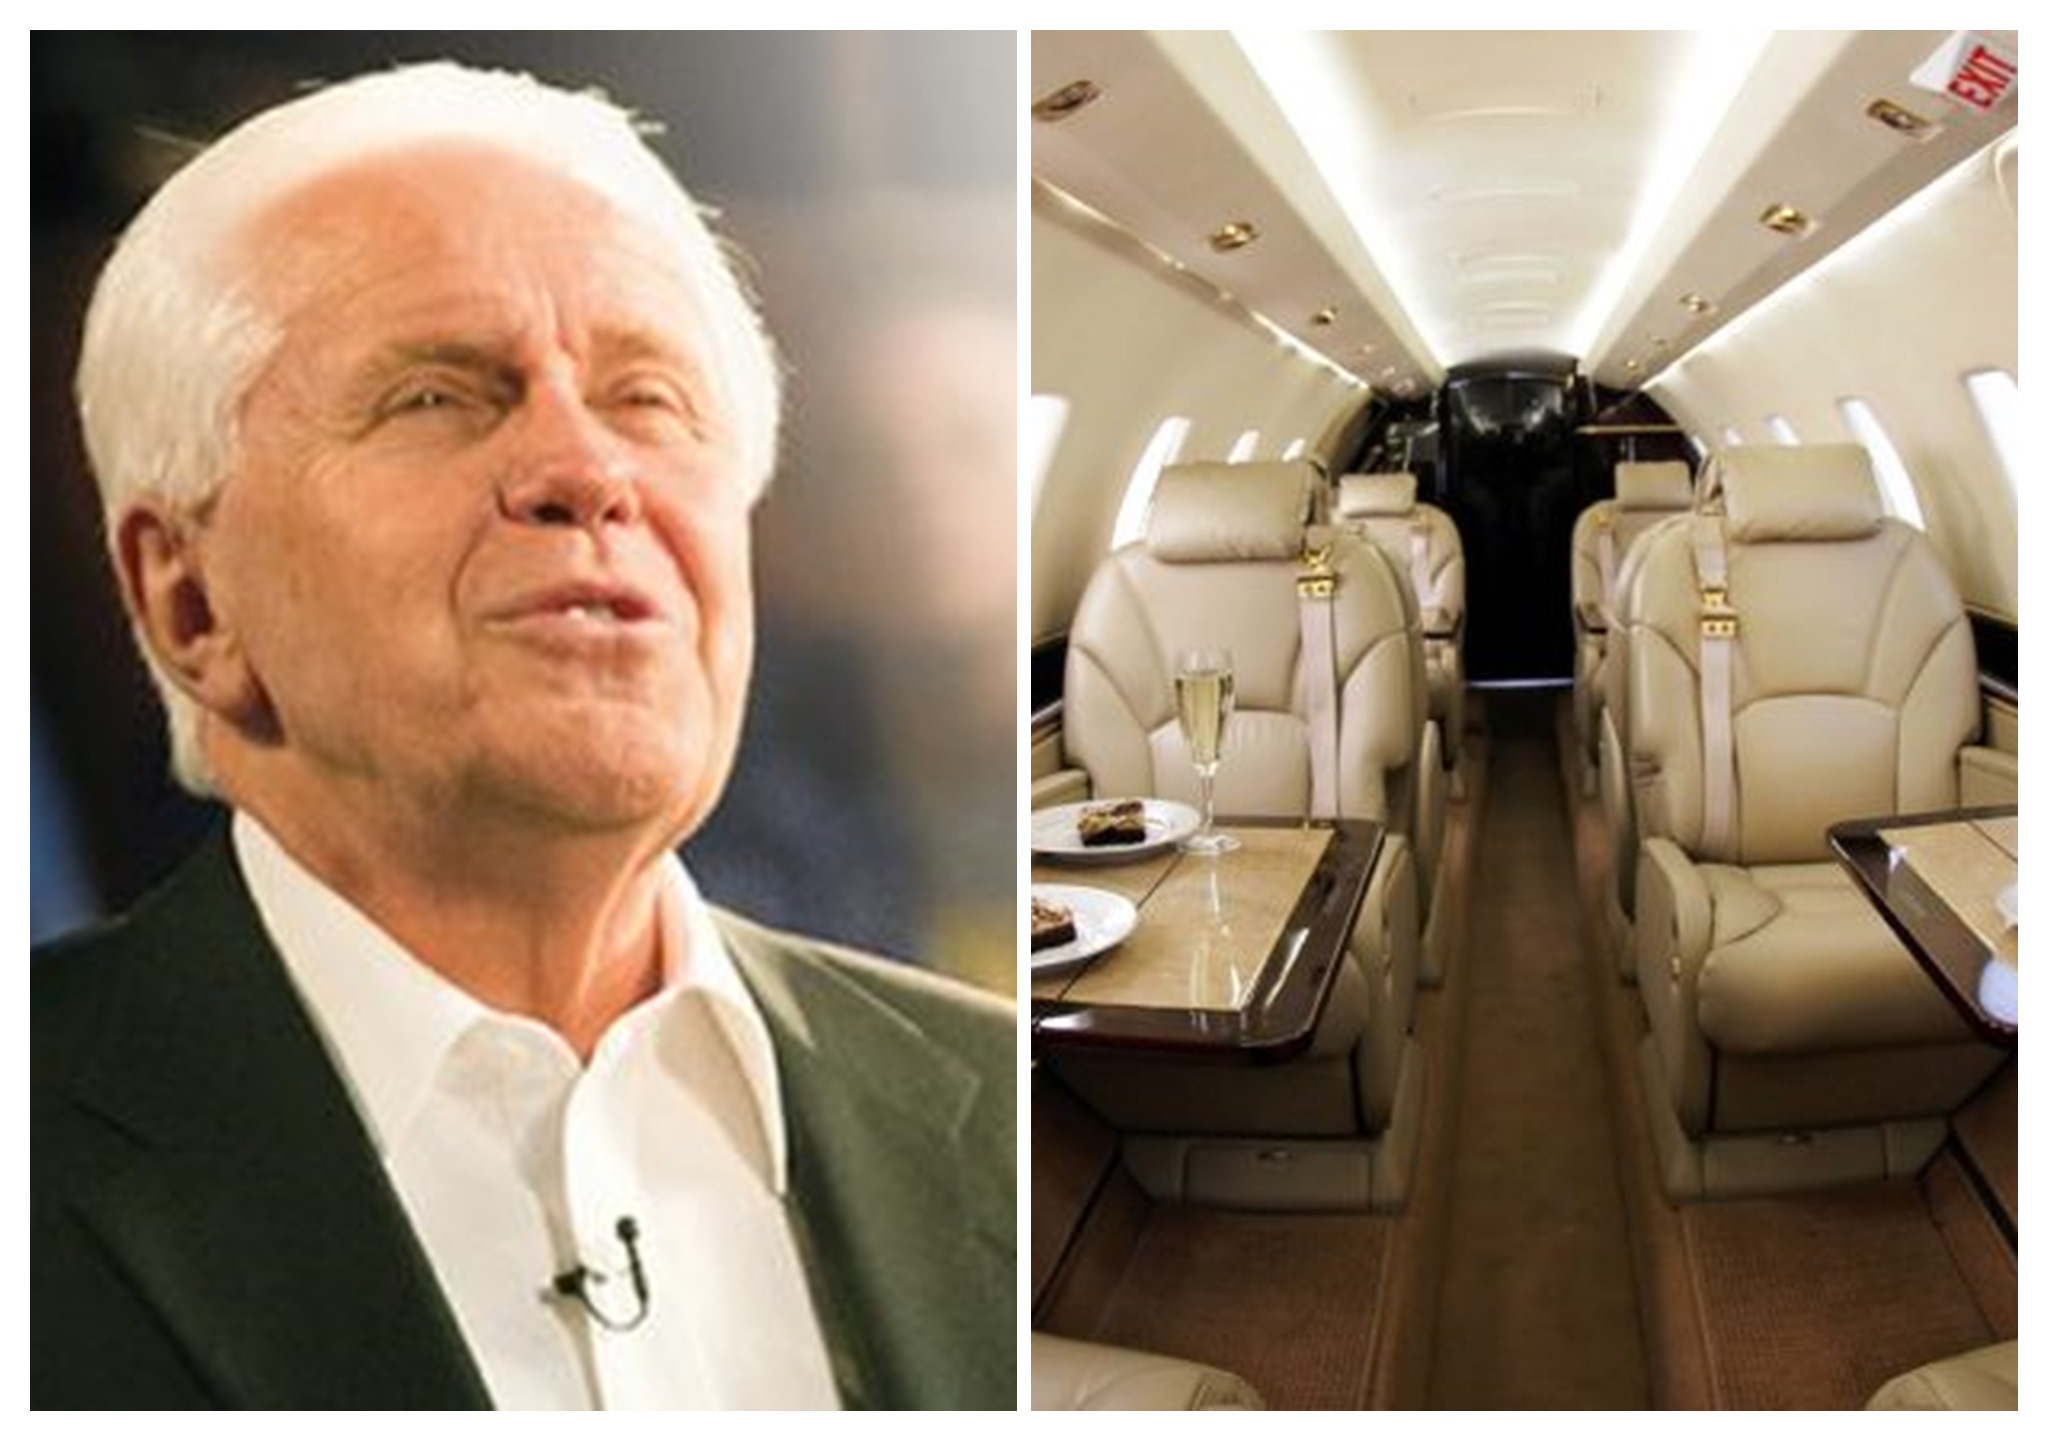 VIDEO: This Pastor Is Trending; He Told His Church Members To Donate $54M Because God Told Him To Buy A 4th Private Jet